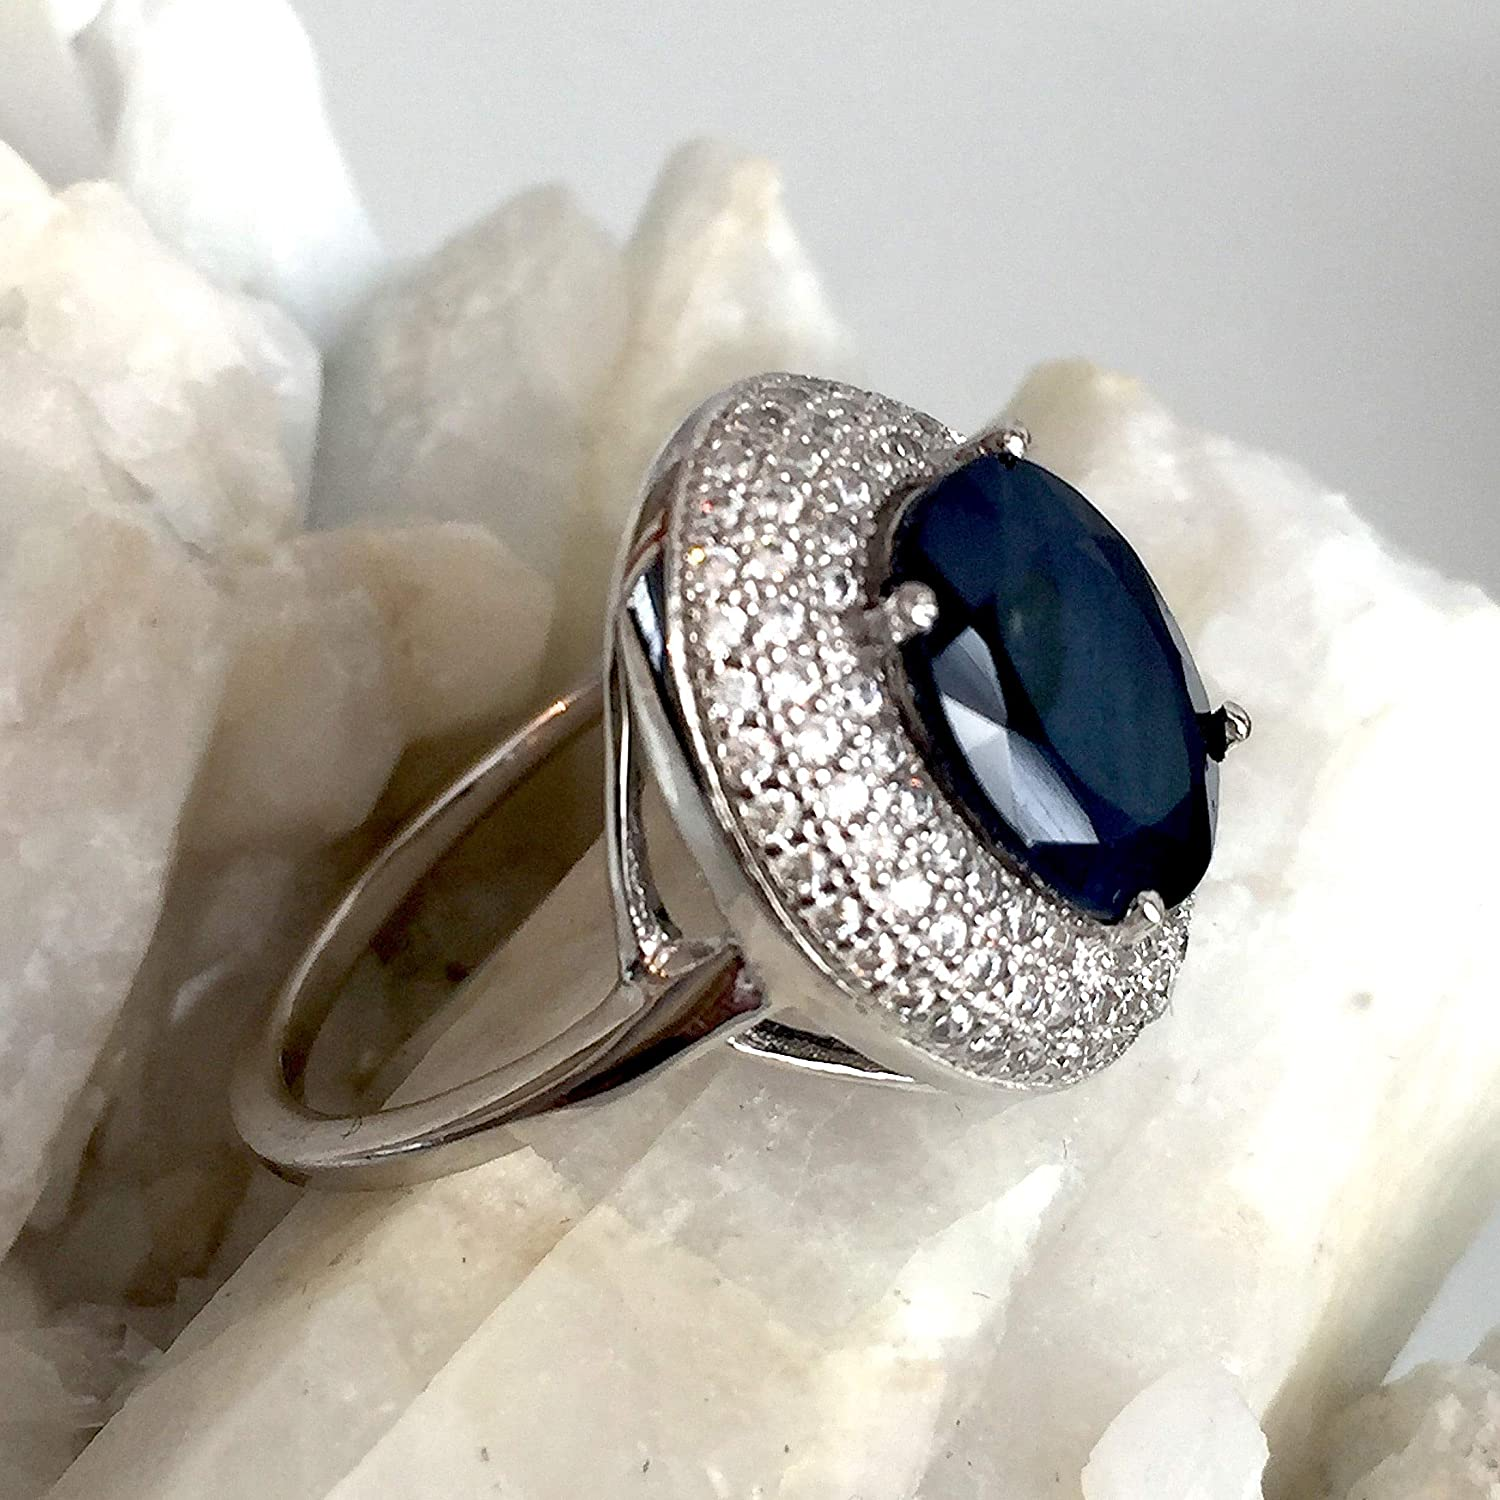 Ring Size 9 US 8x10 MM Natural Top Grade Faceted Excellent Top Blue Aquamarine Oval Shape Genuine 925 Sterling Silver Fine Quality Rings